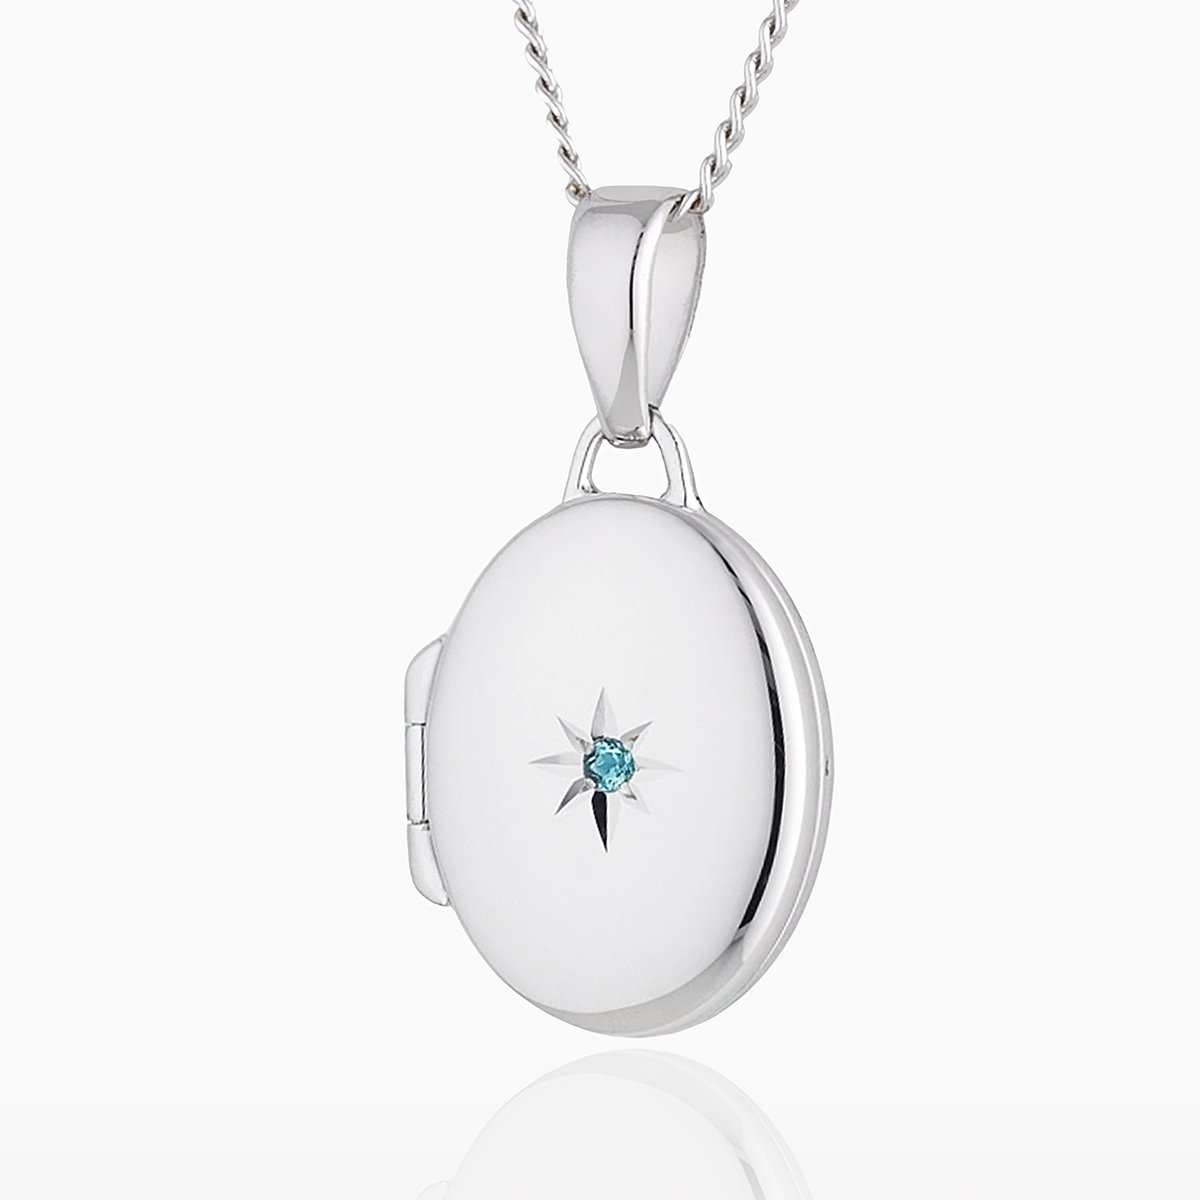 Product title: Petite White Gold and Topaz Oval Locket, product type: Locket